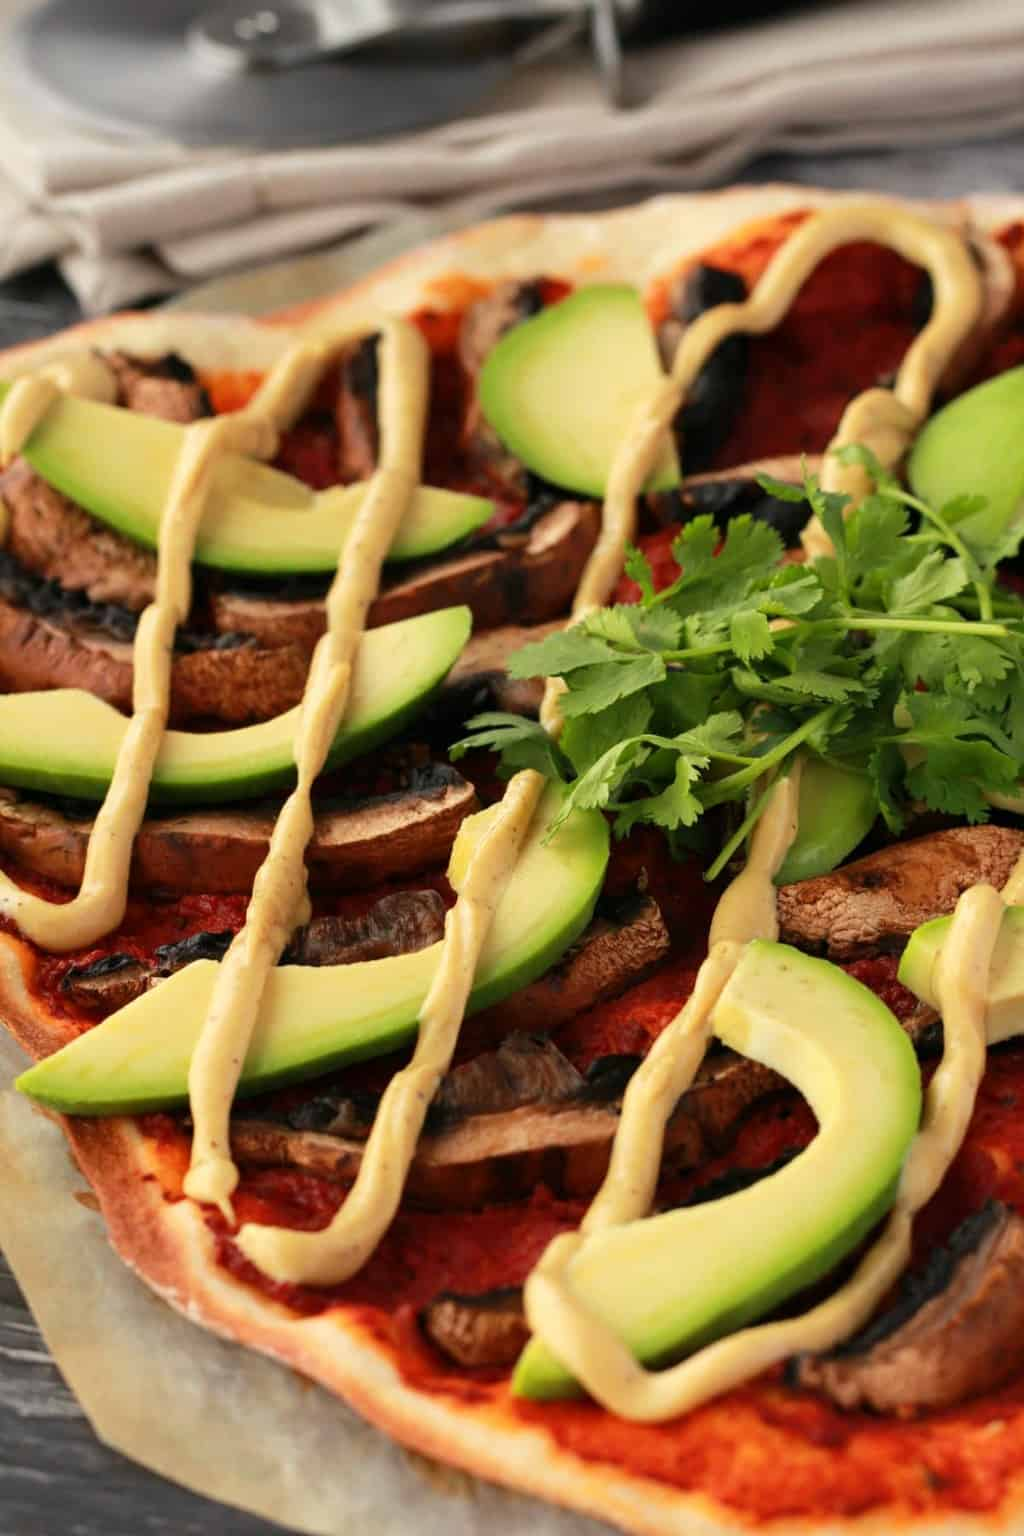 Homemade pizza with tomato sauce, black mushrooms, sliced avocado and drizzled cashew cheese on parchment paper